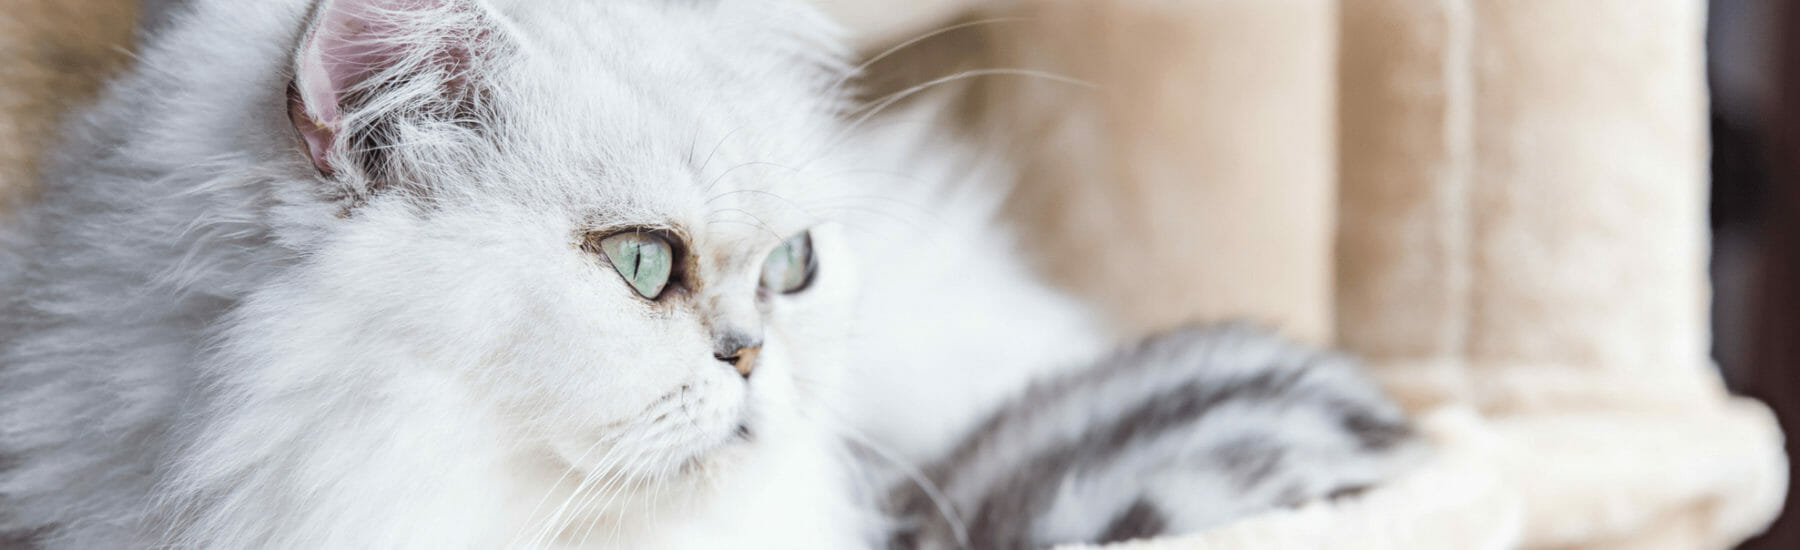 White cat looking off into the distance